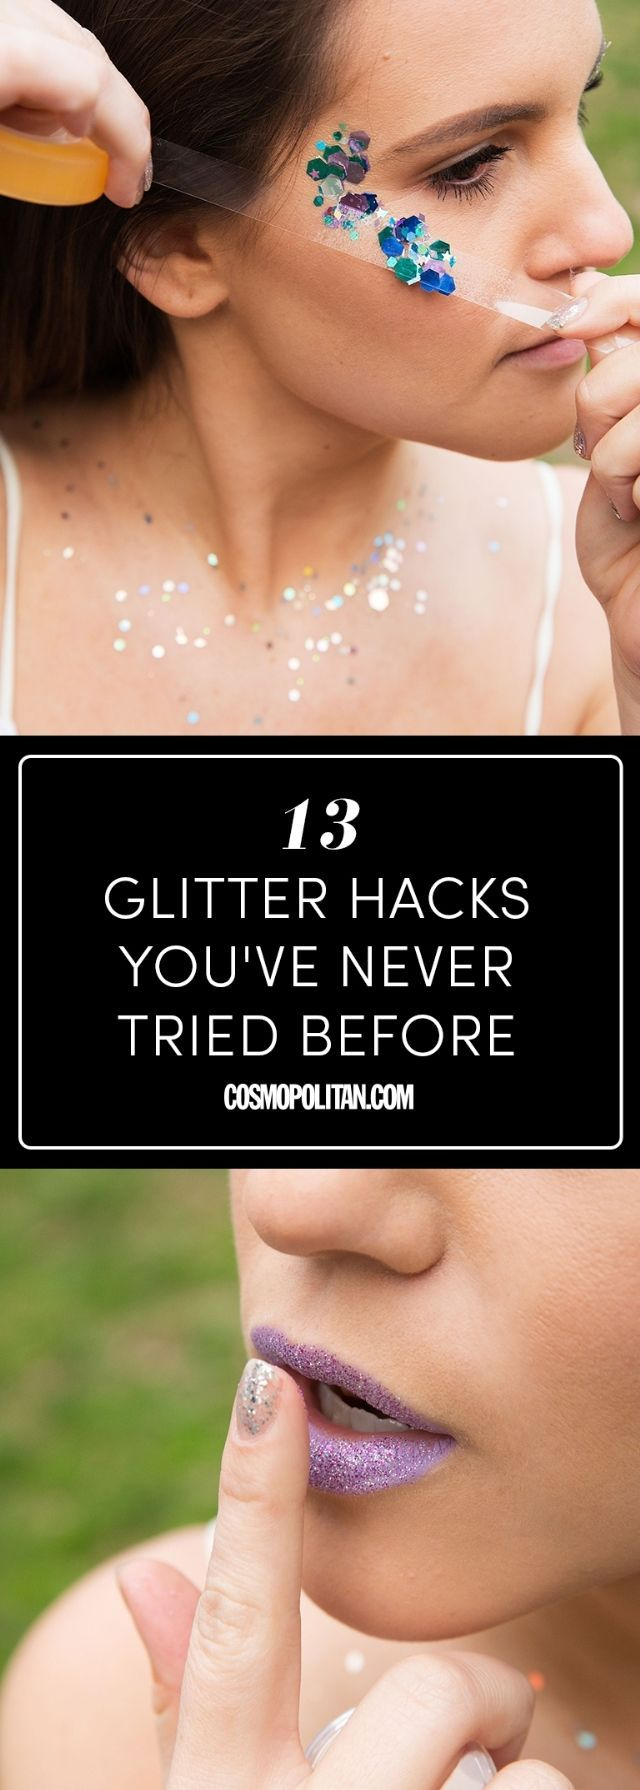 How to Wear Body Glitter — Tricks for Applying Glitter Makeup